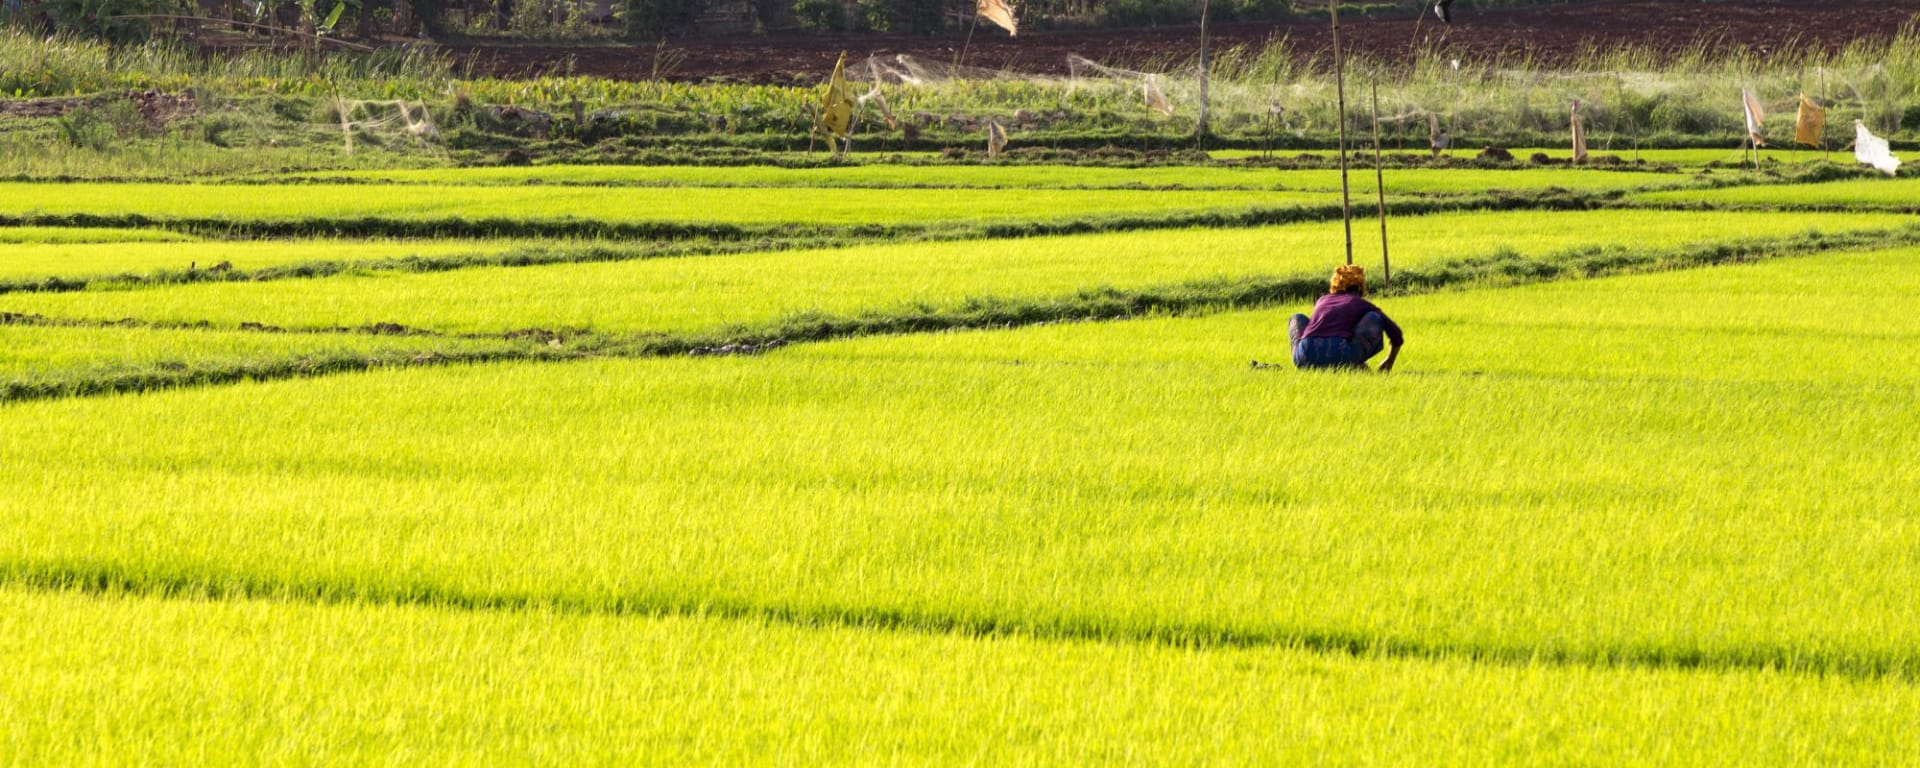 Le Myanmar authentique de Yangon: Sagar Lake Ricefield with Woman